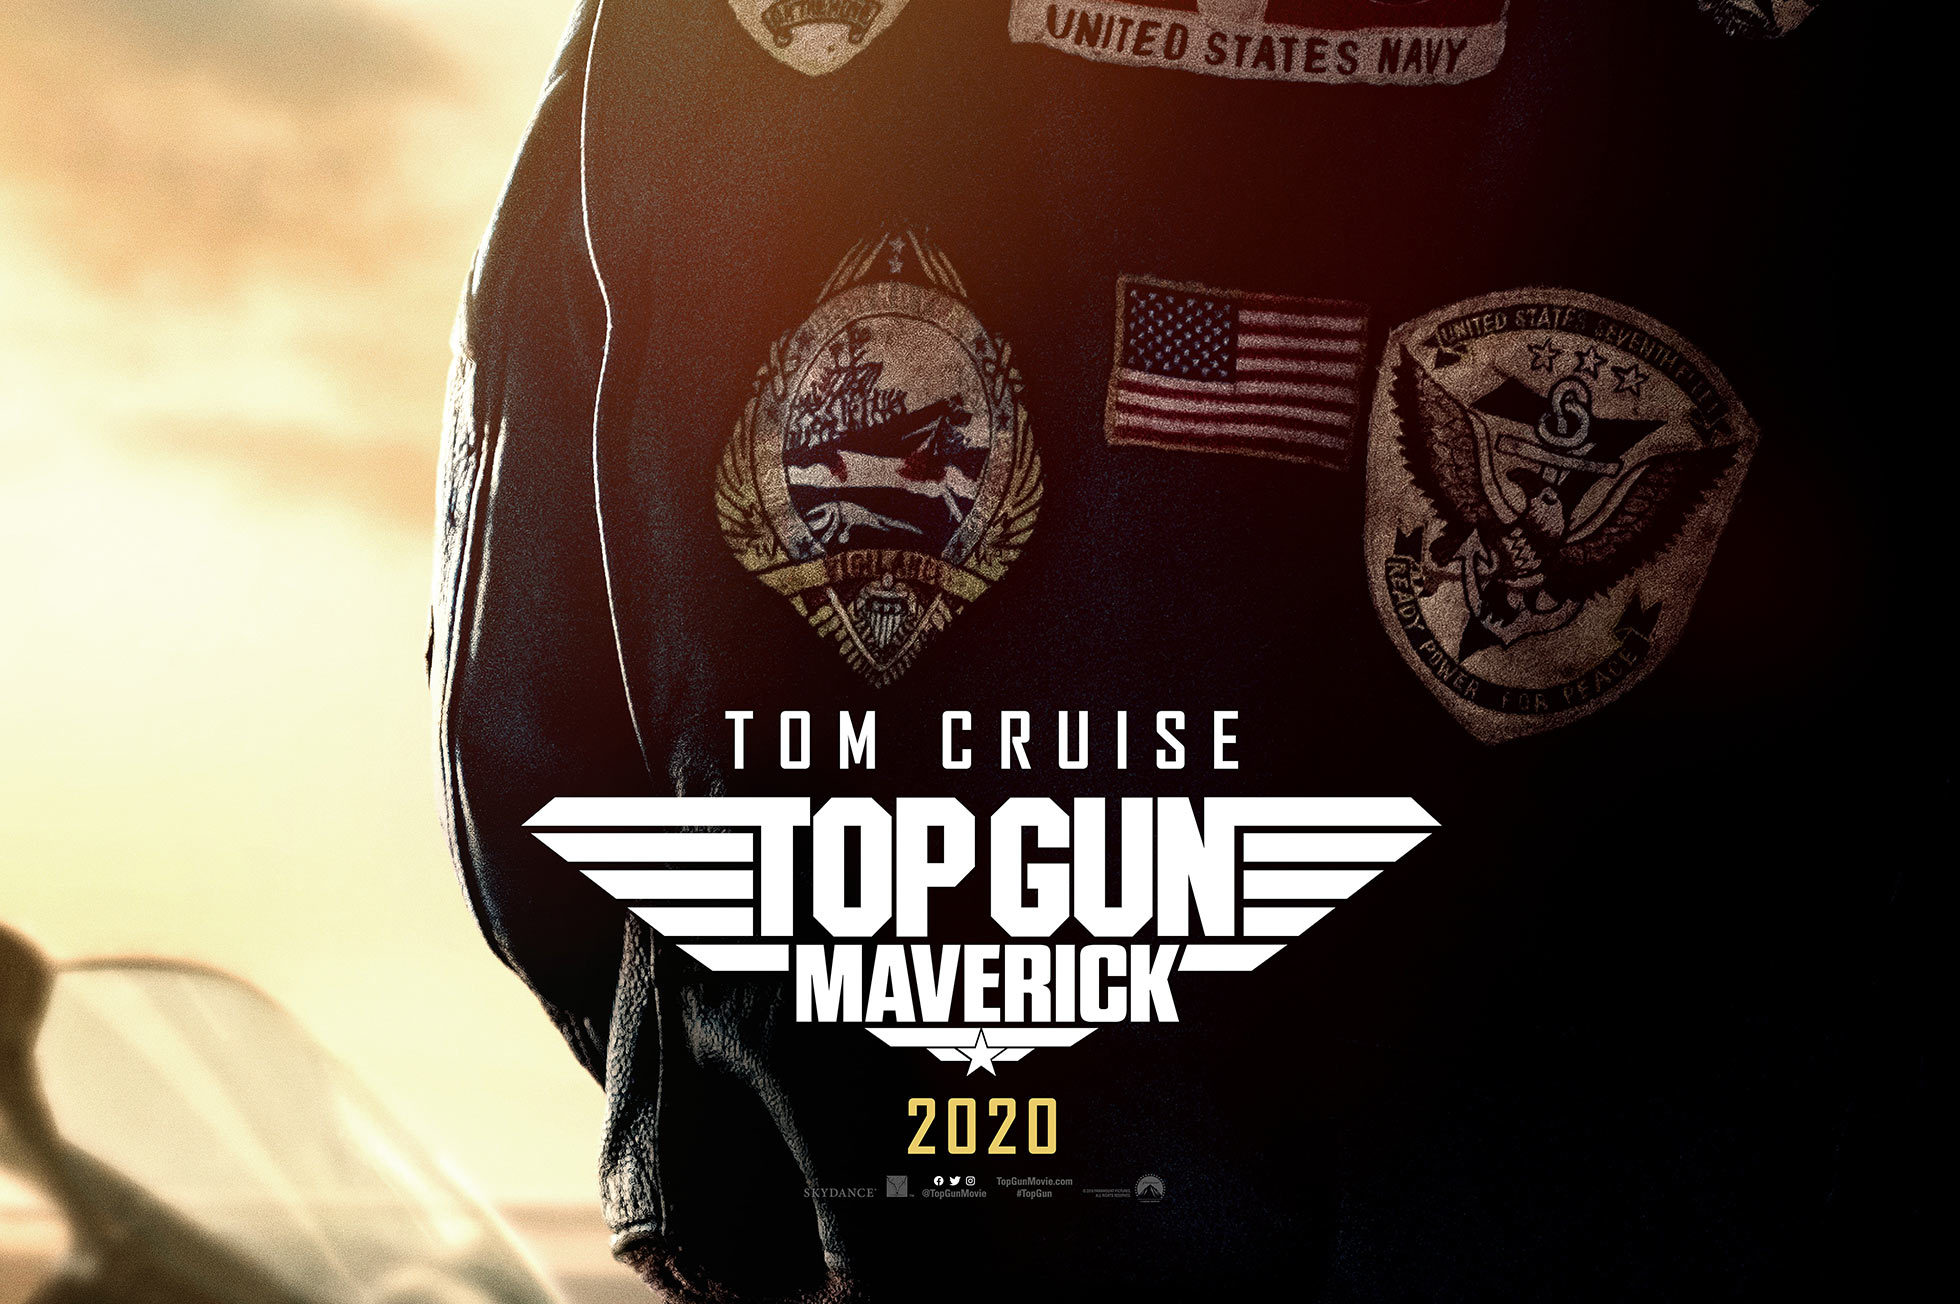 'Top Gun: Maverick' - landscape artwork